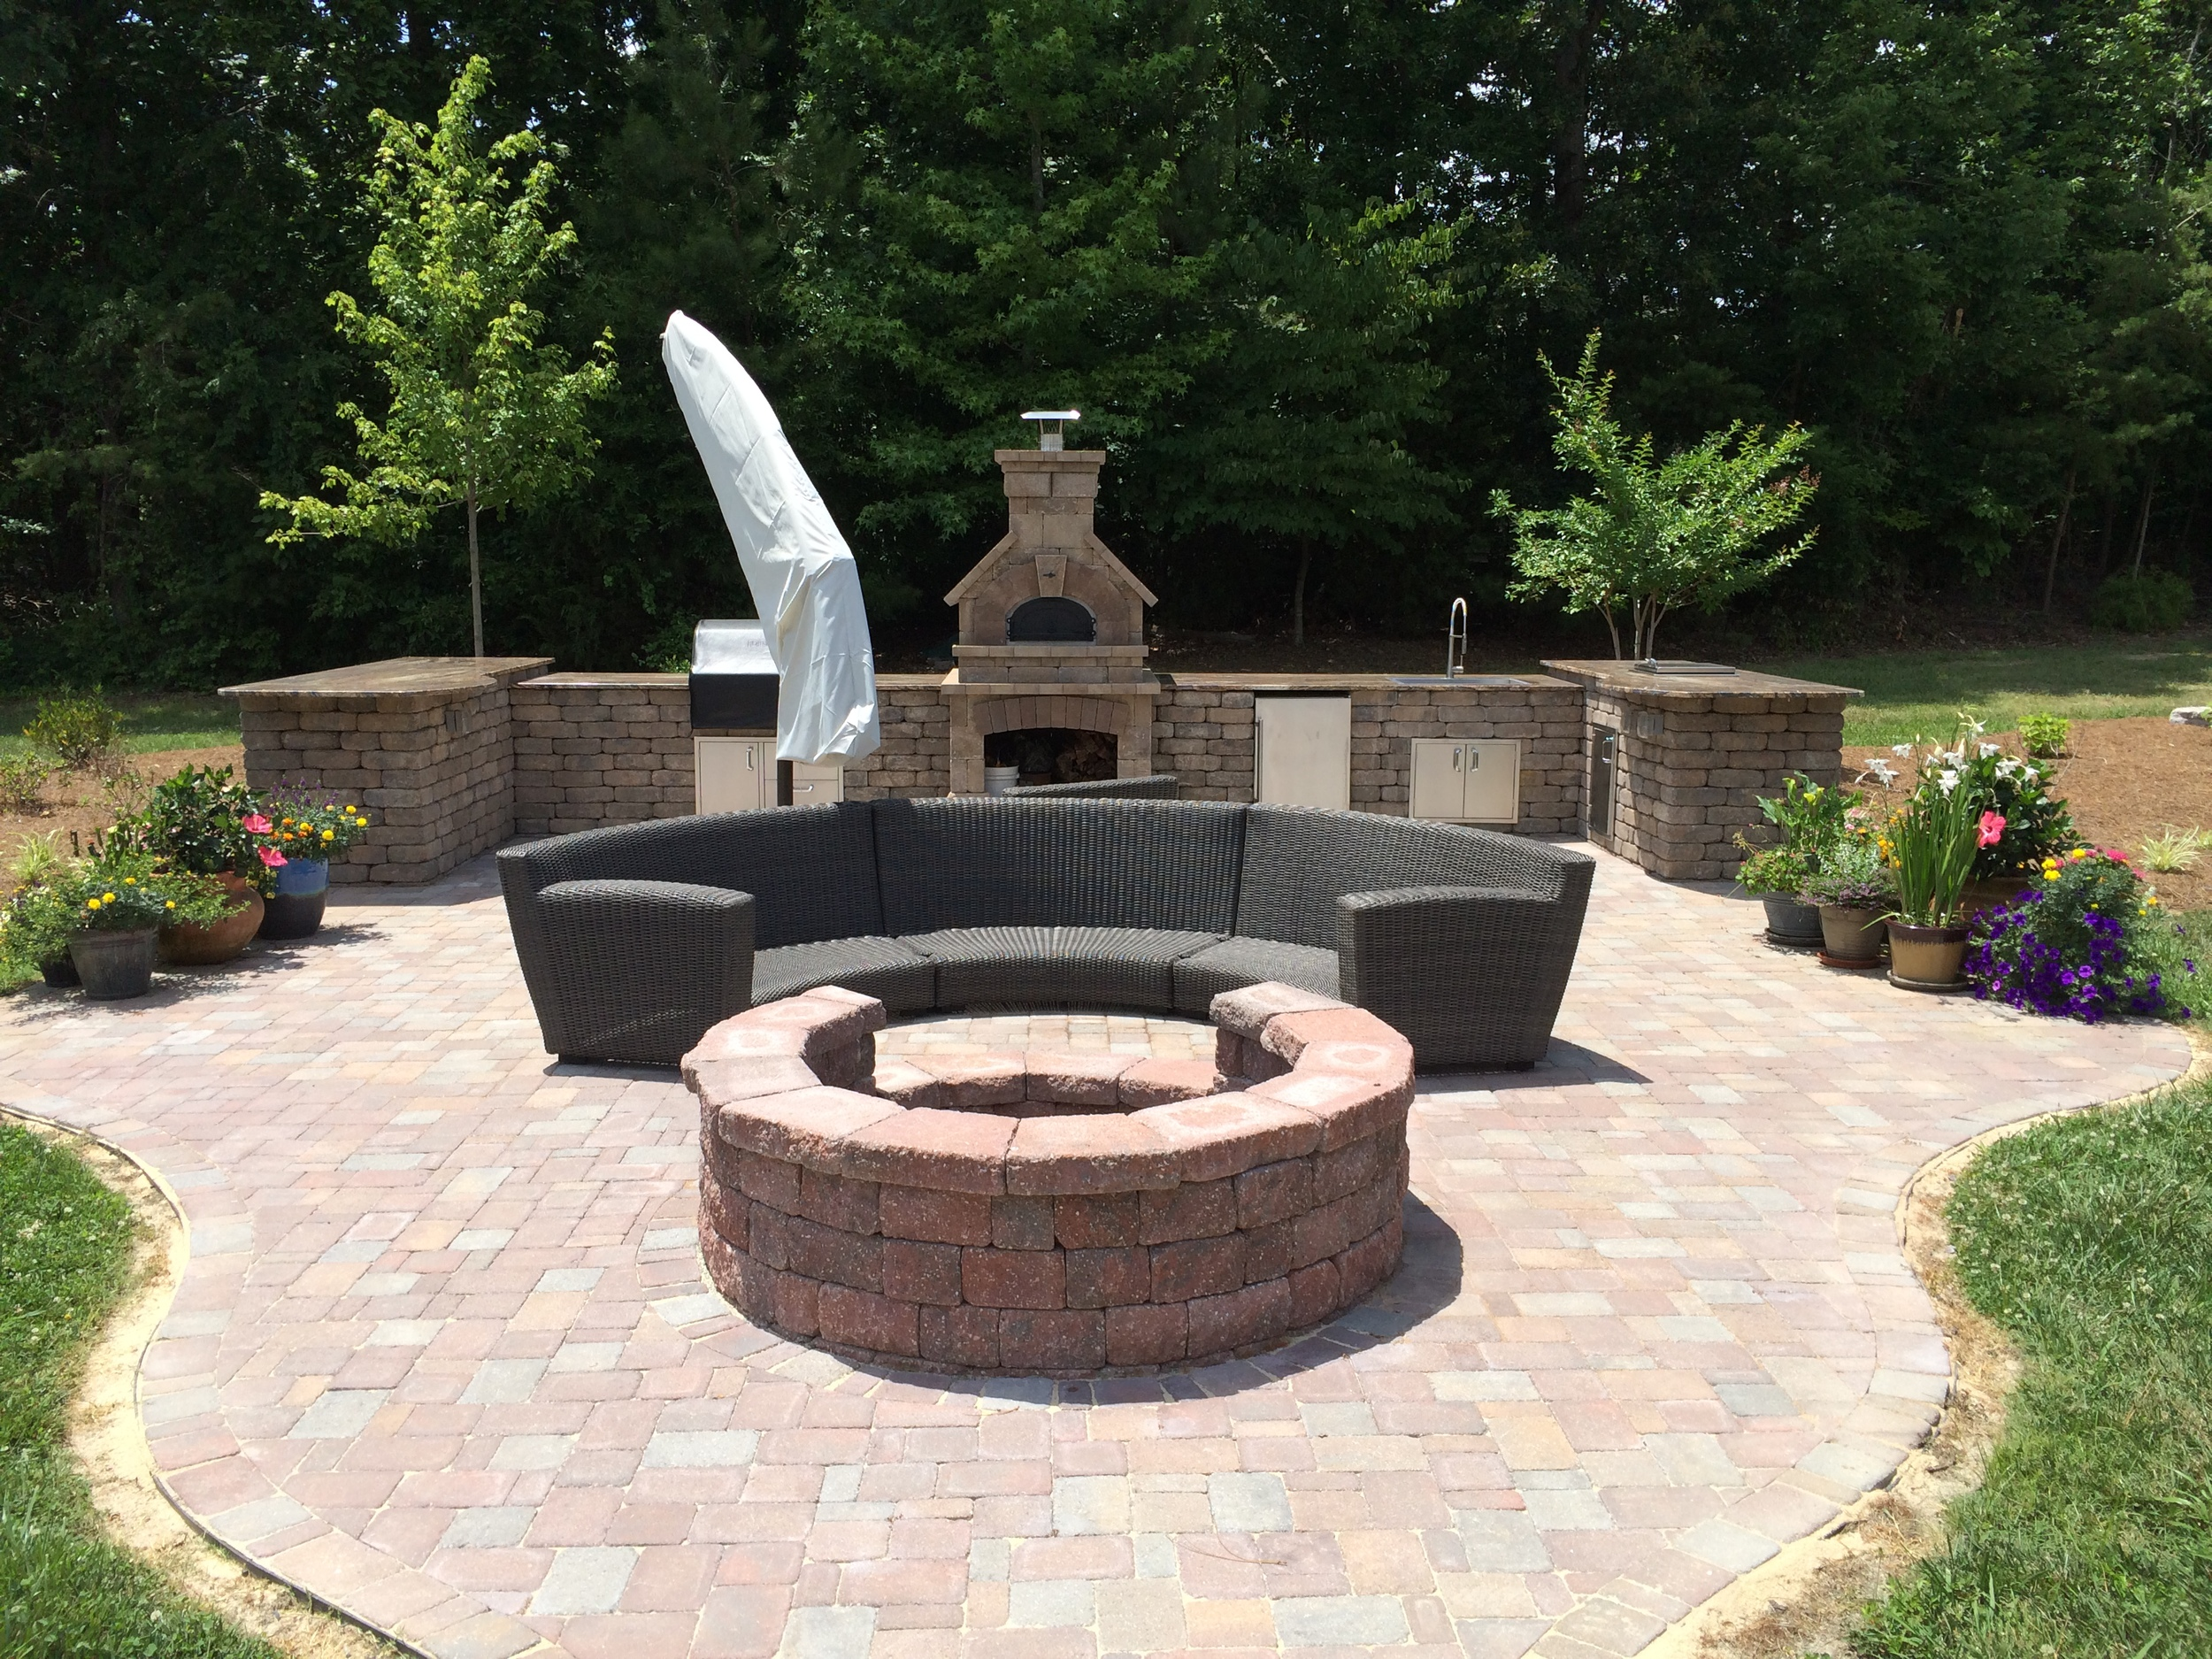 Outdoor Kitchen with Pizza Oven- 3D Landscape Design Burlington NC